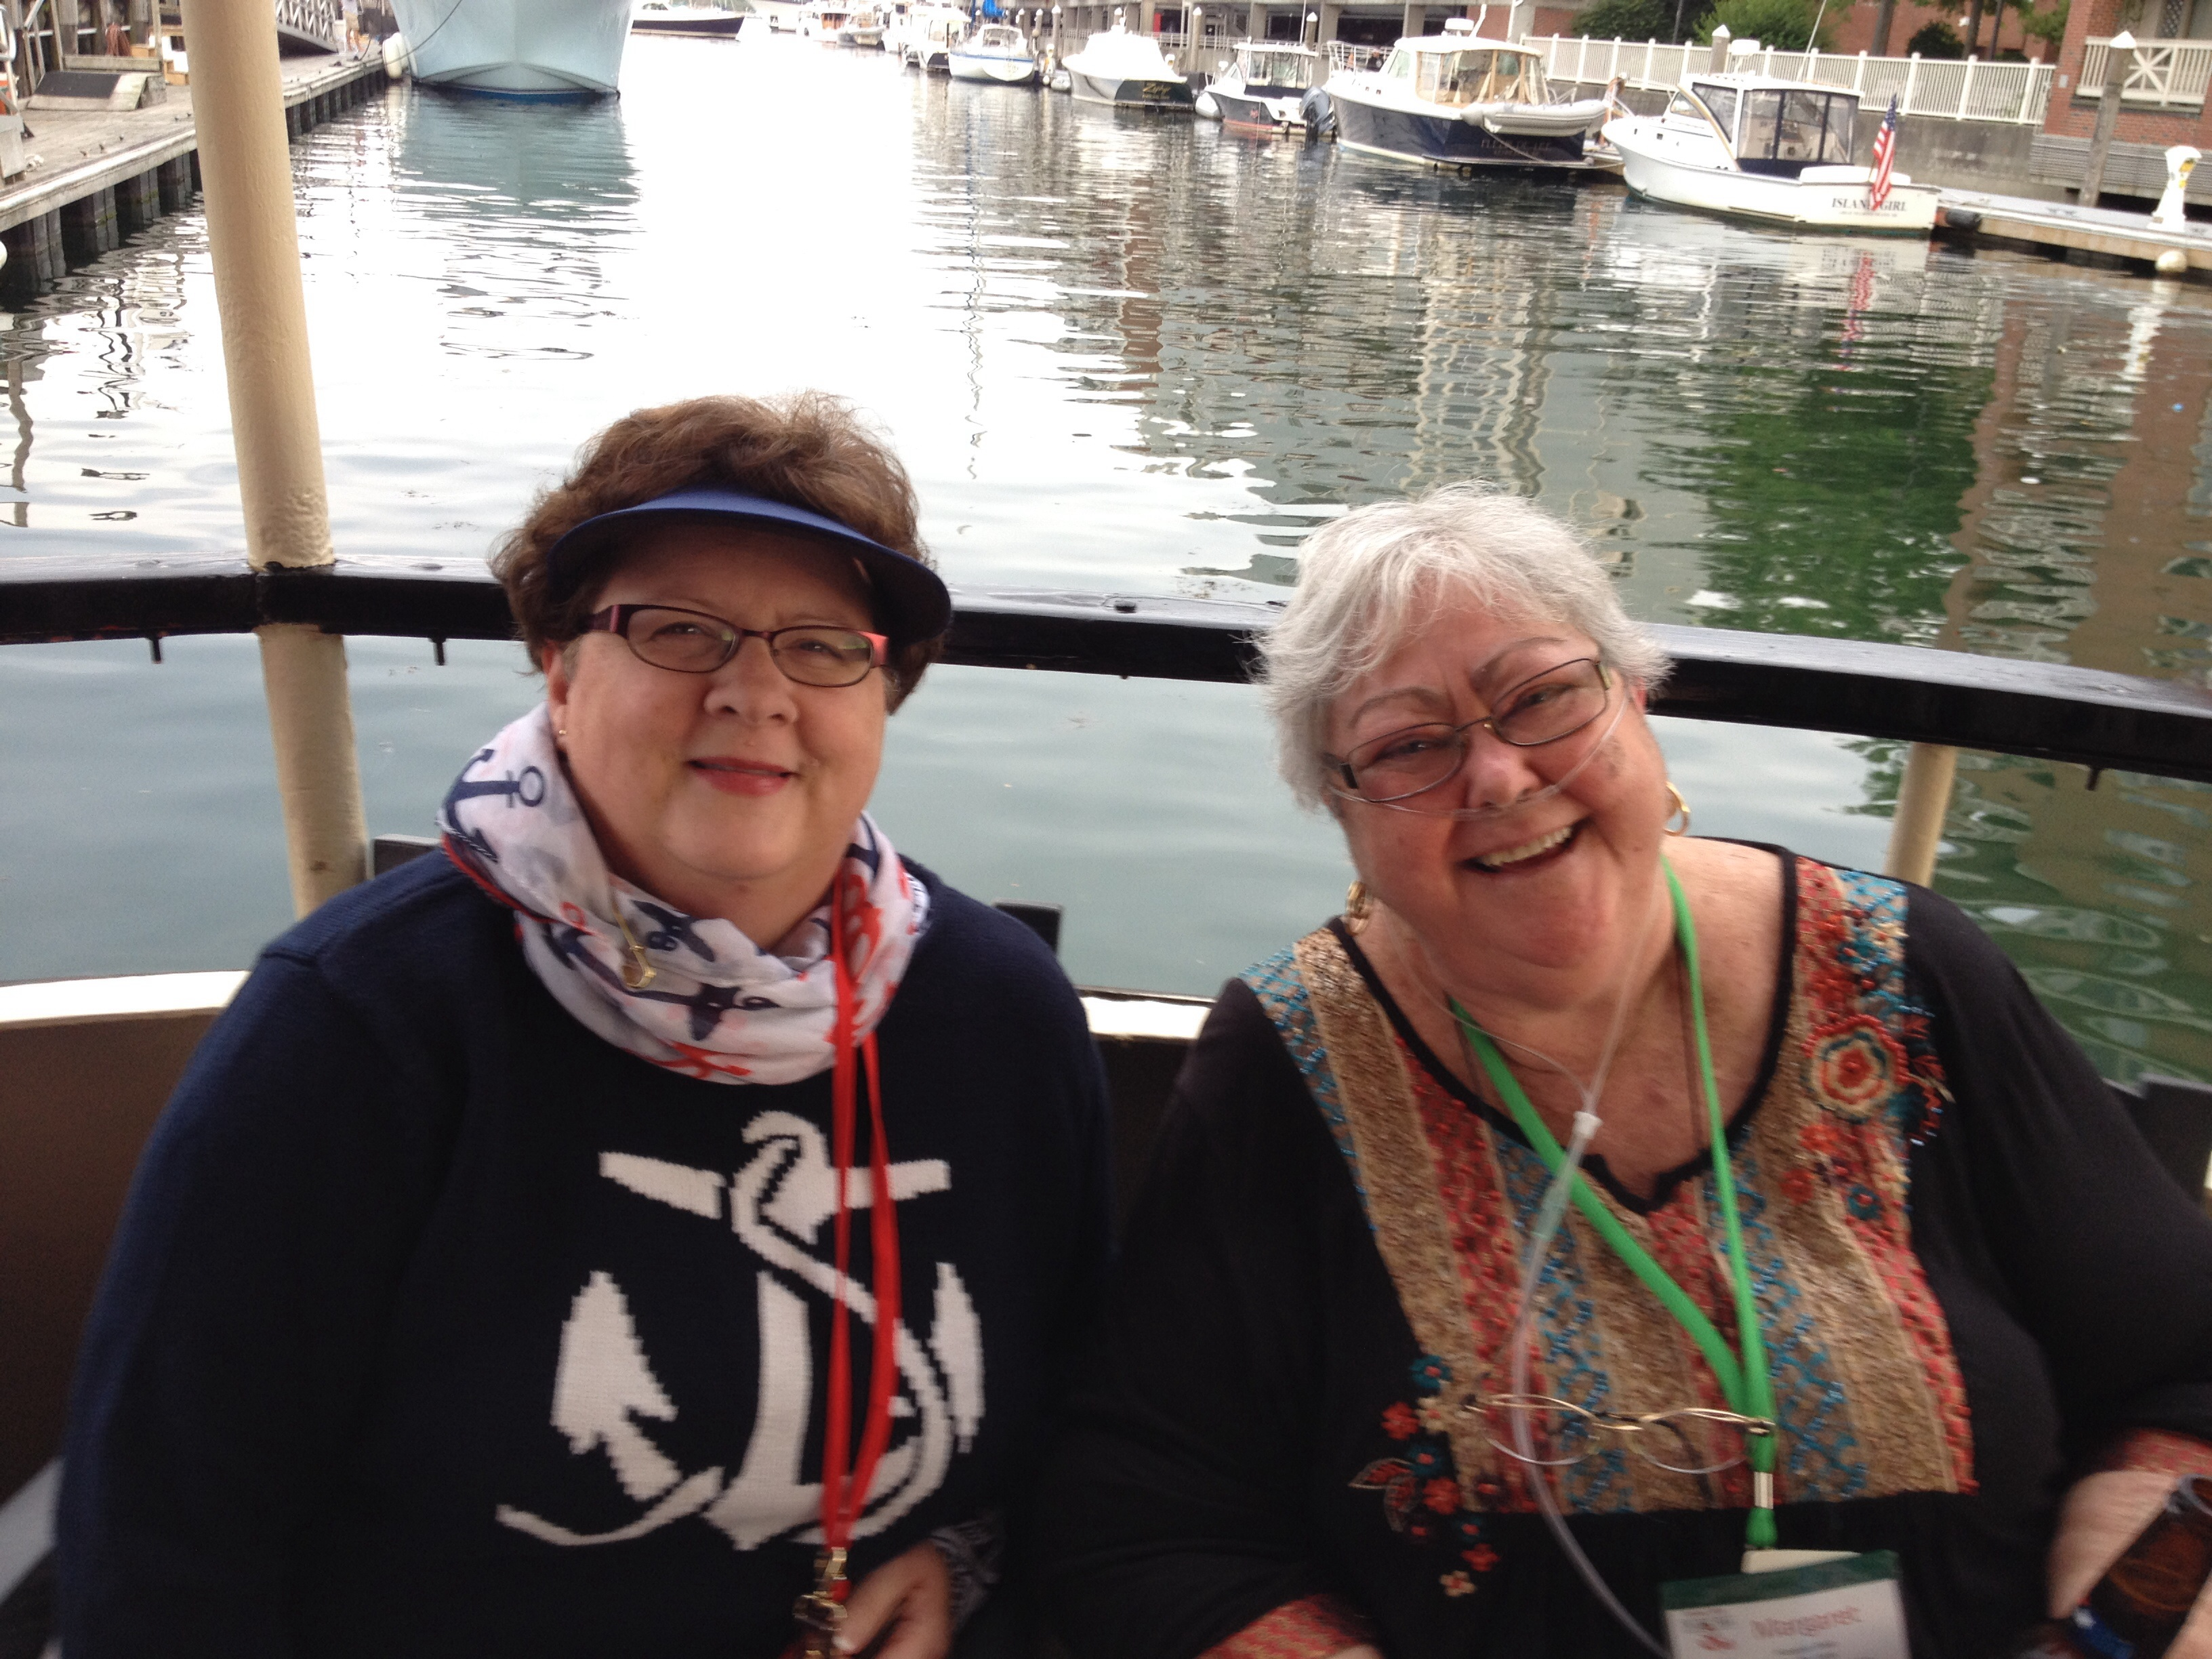 Dr. Jackie Owens (L) and Dr. Margaret Freda (R) at INANE 2014